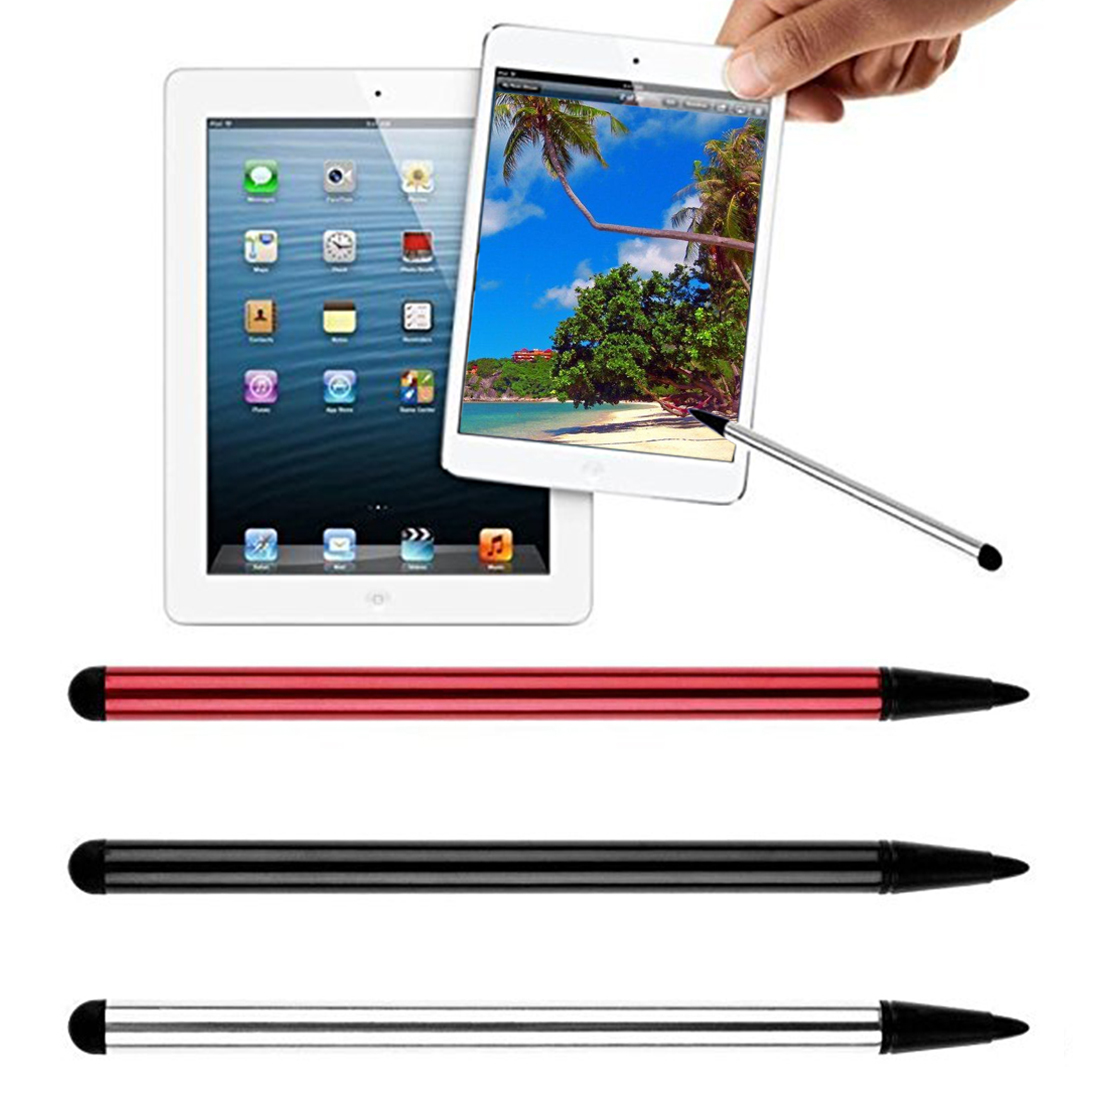 Tablet Pen TouchScreen Pen Stylus Universal For IPhone IPad For Samsung Tablet Phone PC